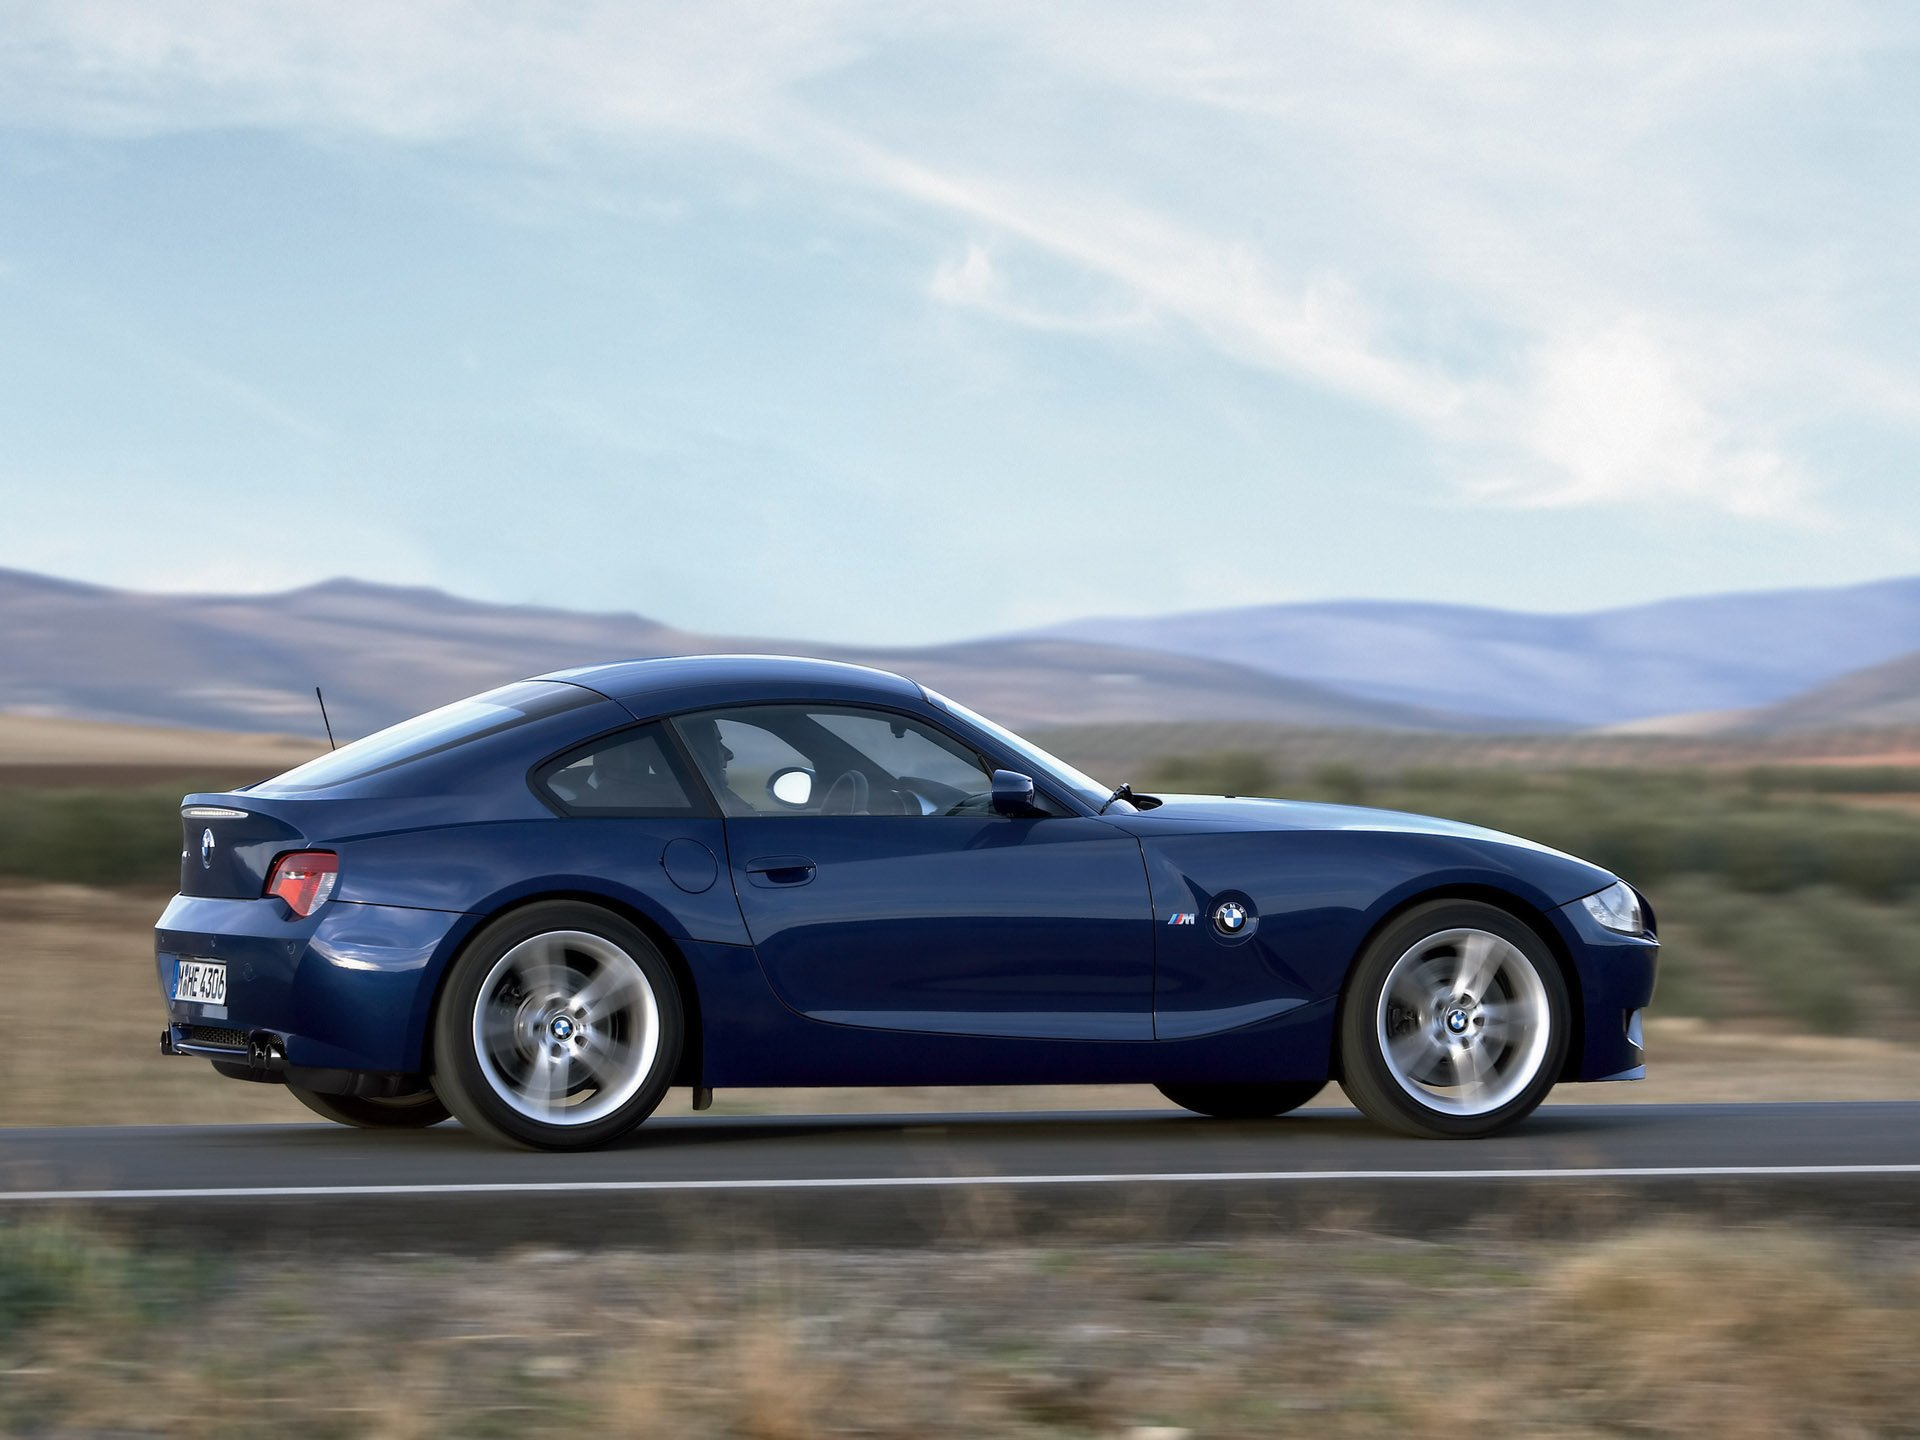 2006 Bmw Z4 m coupe – pictures, information and specs - Auto ...